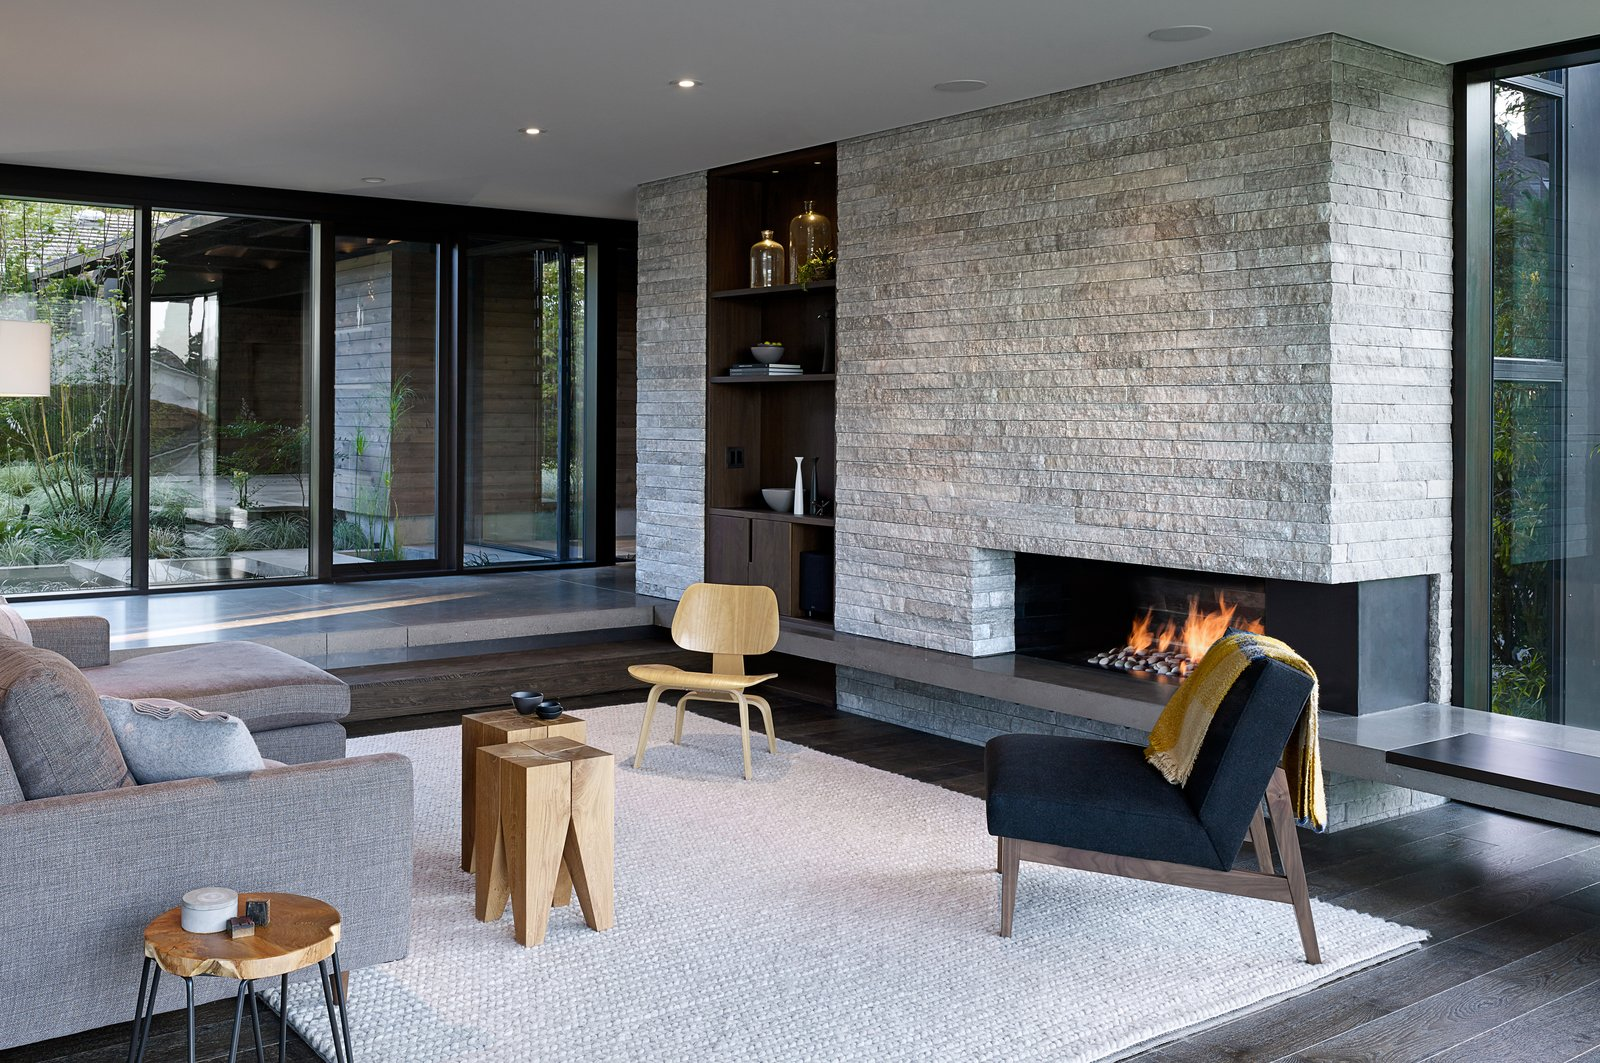 Living Room, Chair, Ceiling Lighting, Standard Layout Fireplace, Stools, and Recessed Lighting Laurelhurst Residence  Laurelhurst Residence by mw|works